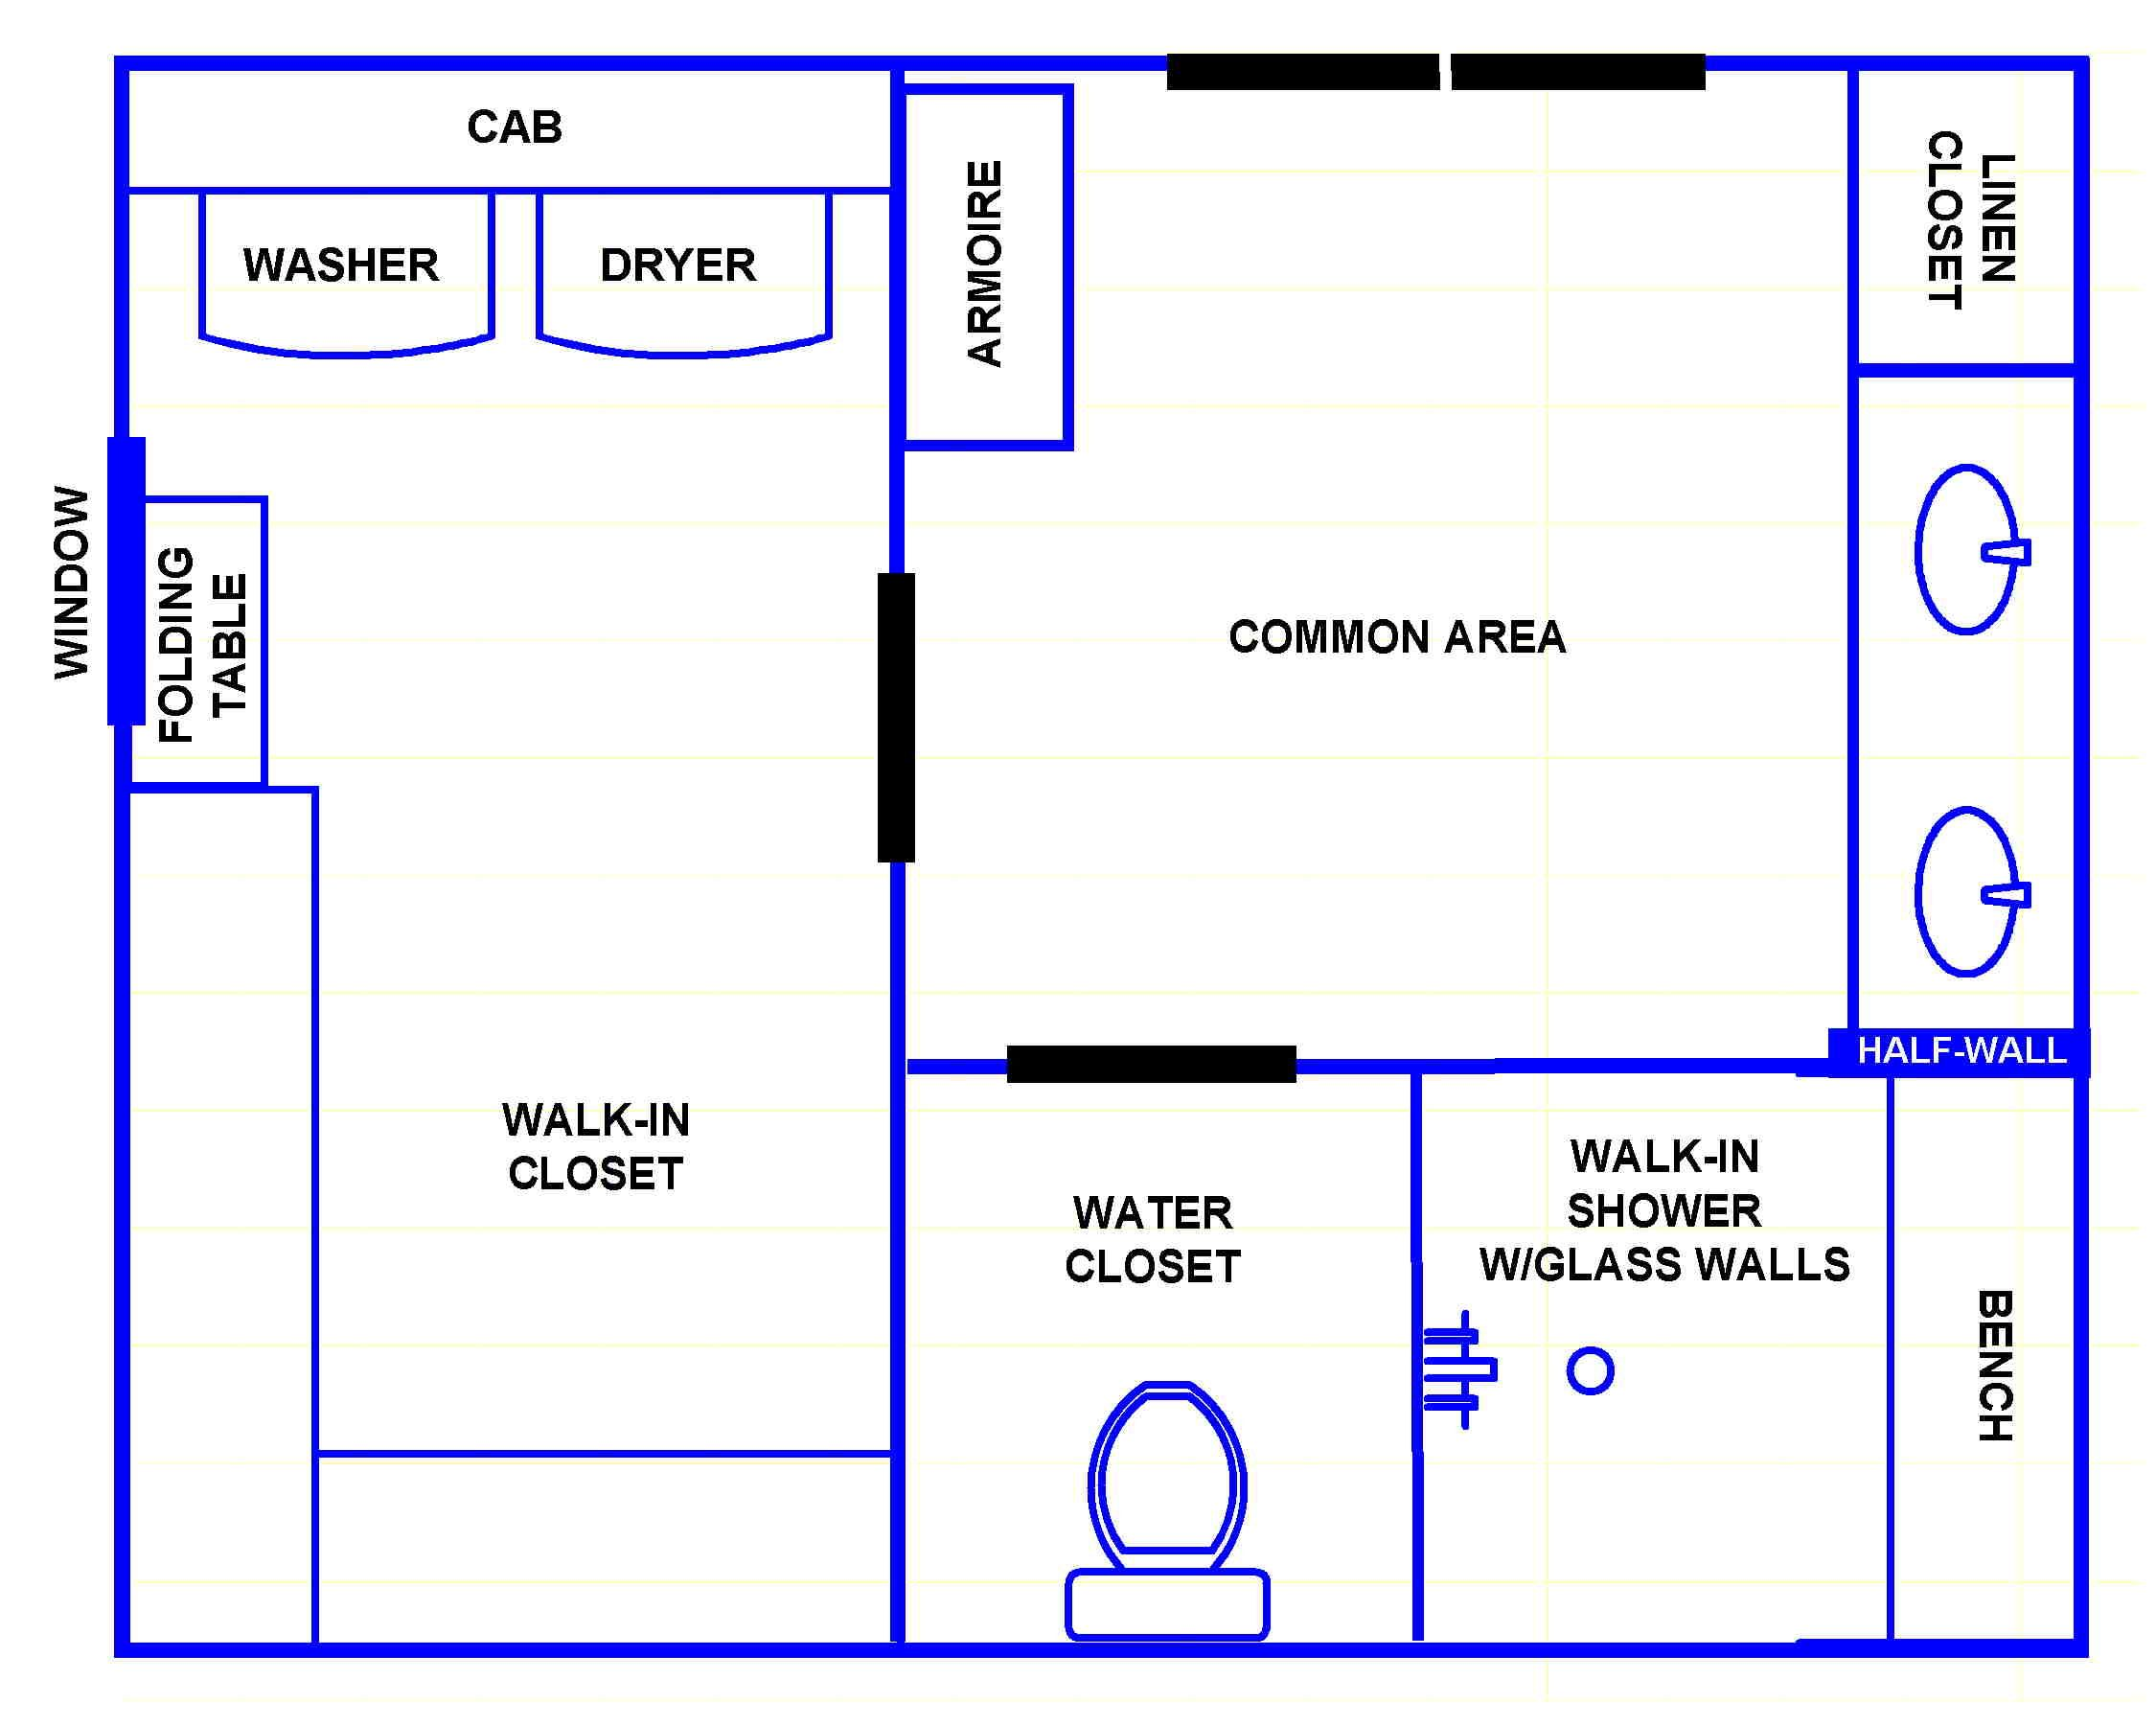 Master Bathroom And Closet Layouts Does Anyone Have Any Ideas For This Master Bath Layout I M M Master Bath Layout Bathroom Design Layout Bathroom Floor Plans